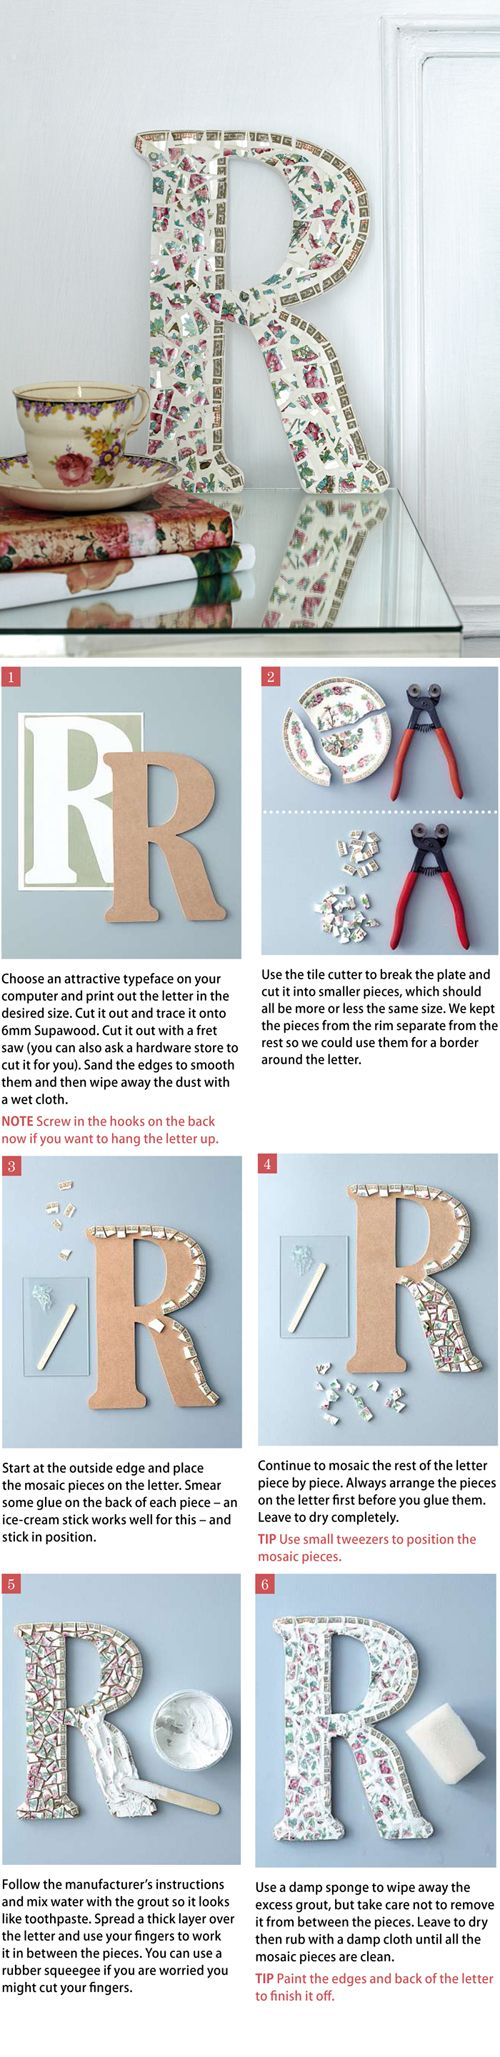 *Make a Beautiful Letter or Number Mosaic - This is a very easy project, even if you have not done mosaic before. Use a pretty old plate that is chipped or cracked. More